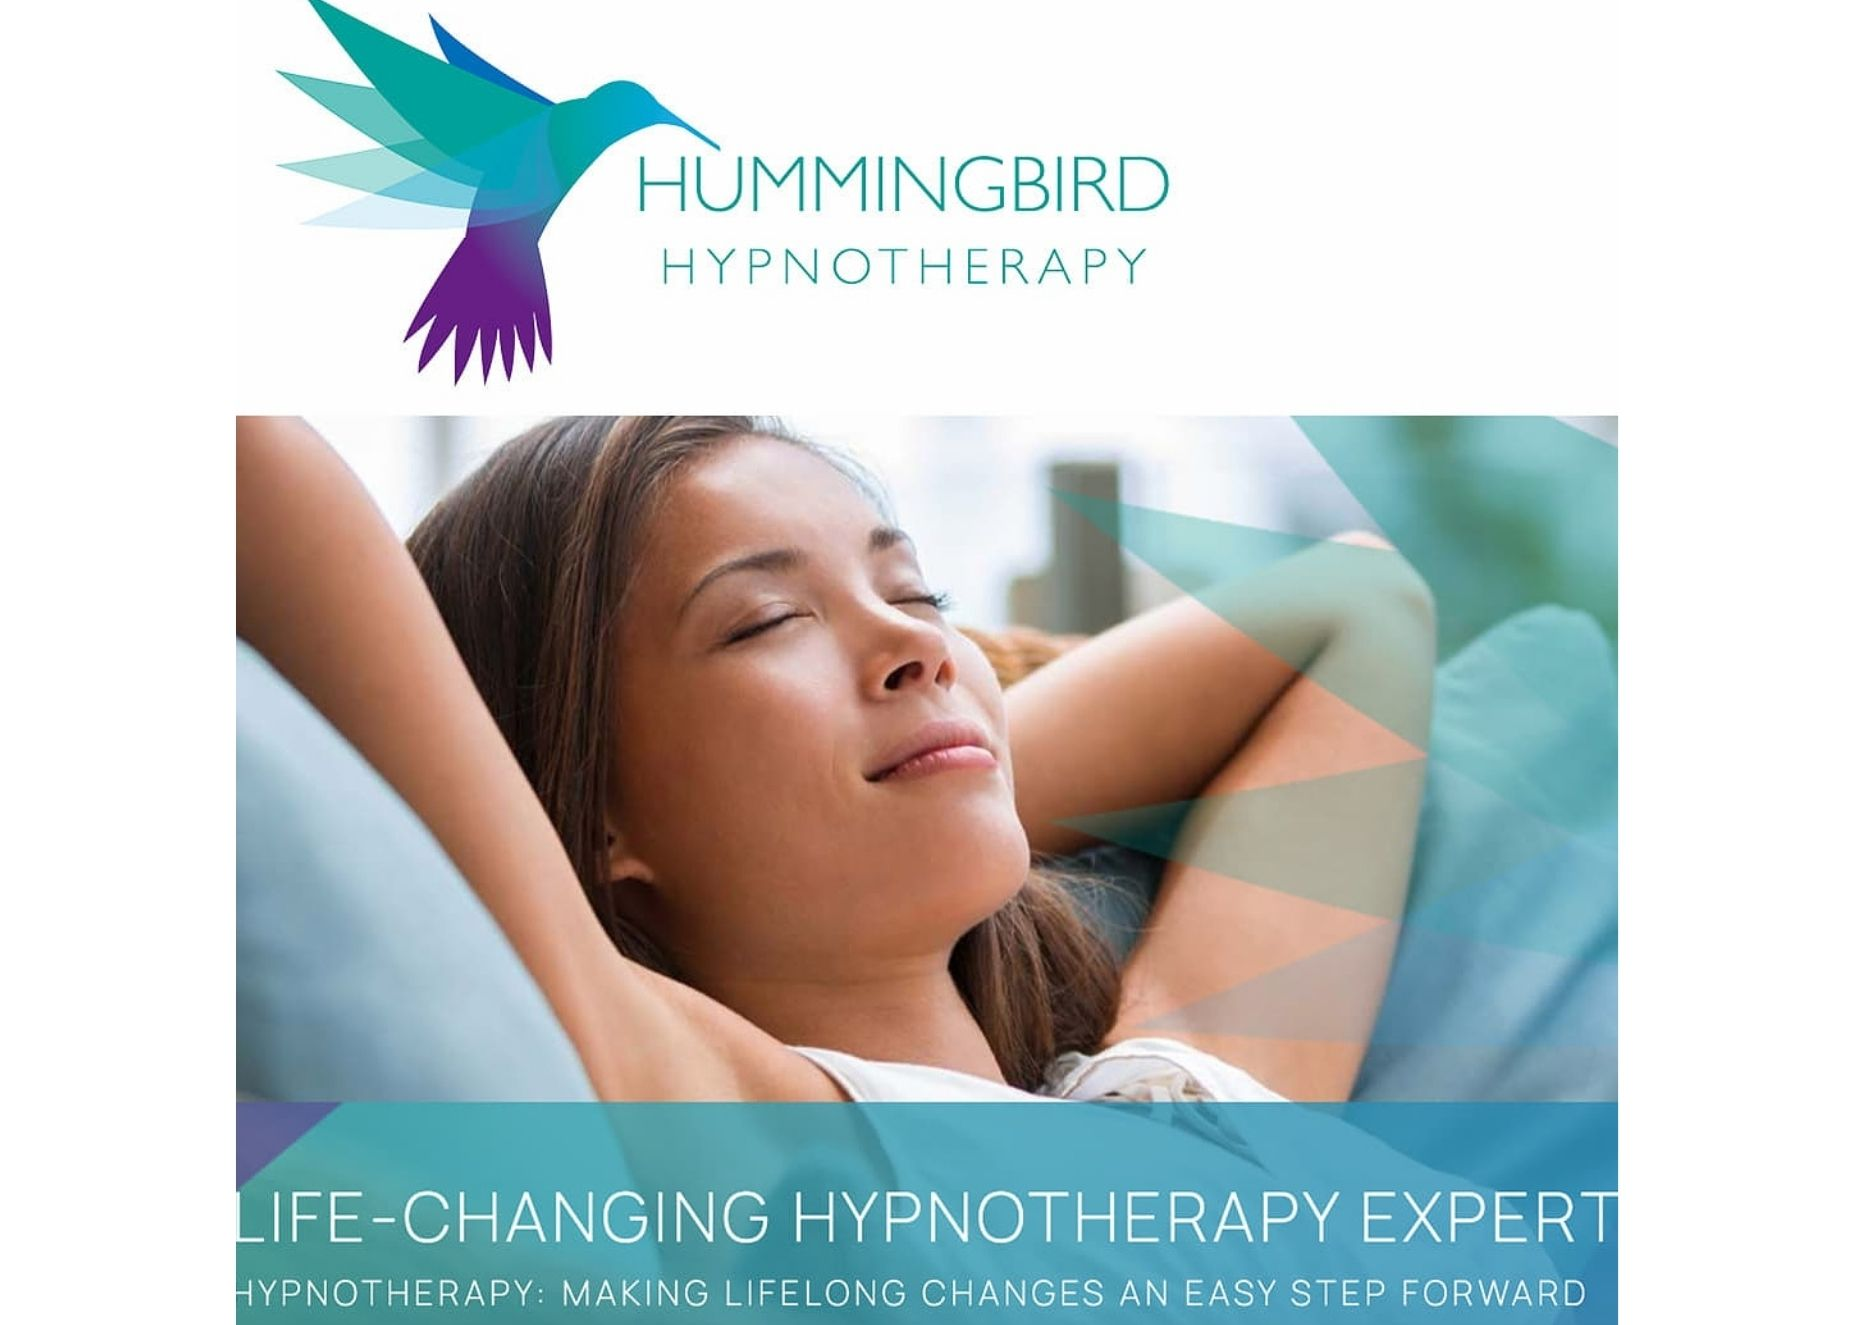 HLN Meets: Silvia Mather of Hummingbird Hypnotherapy ...